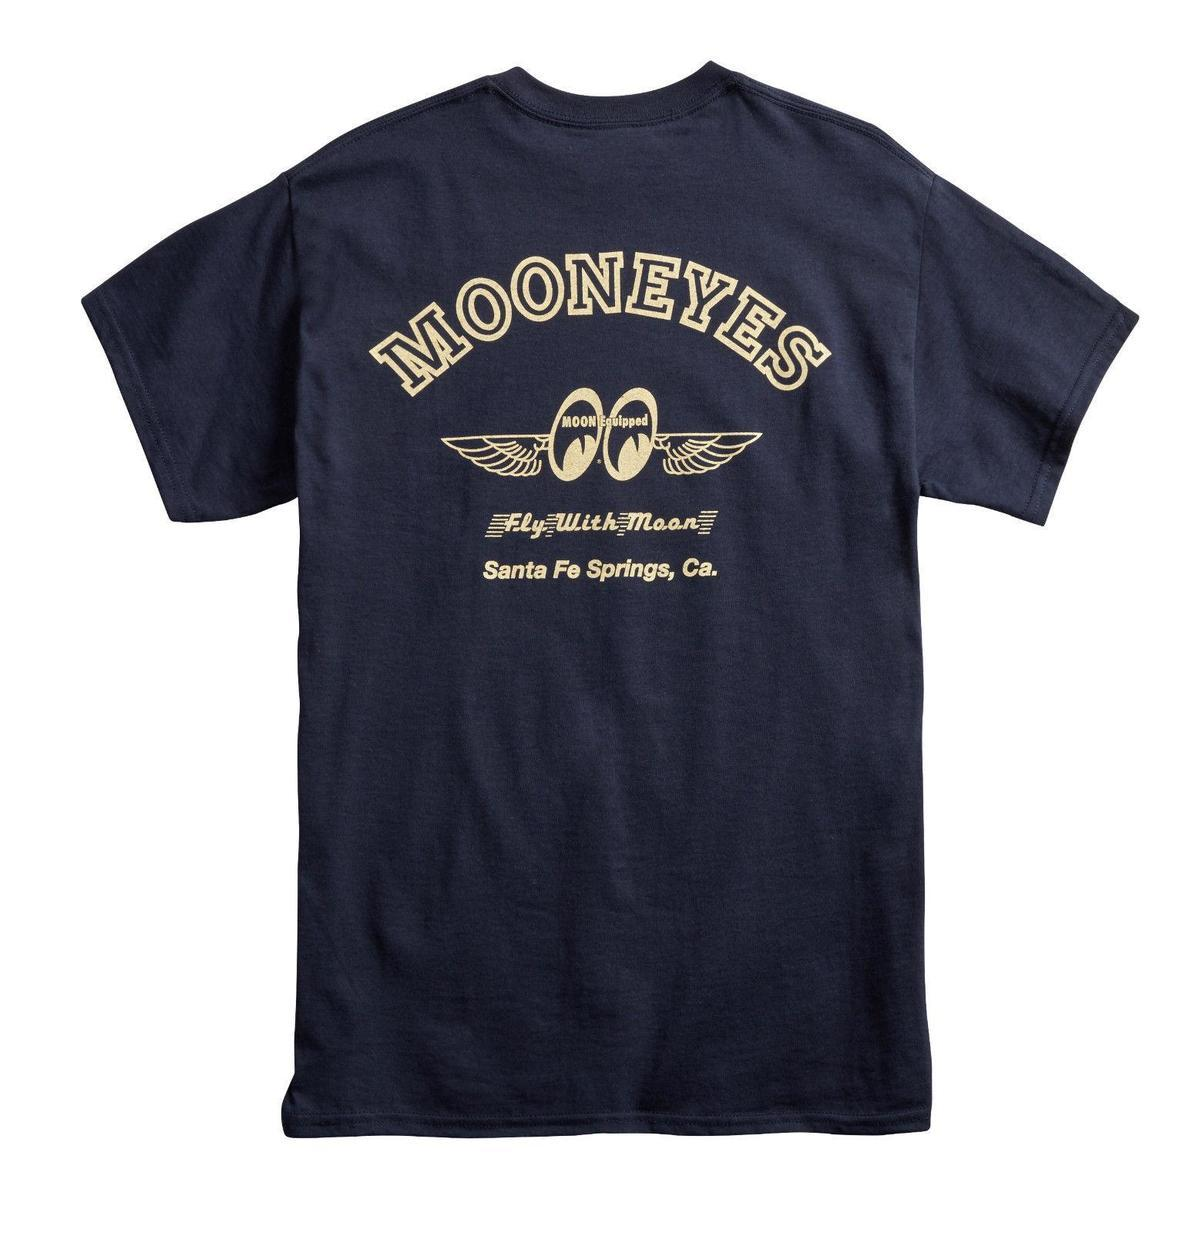 Mens Mooneyes Moon Equipped Fly With Moon T Shirt Navy Blue Cotton